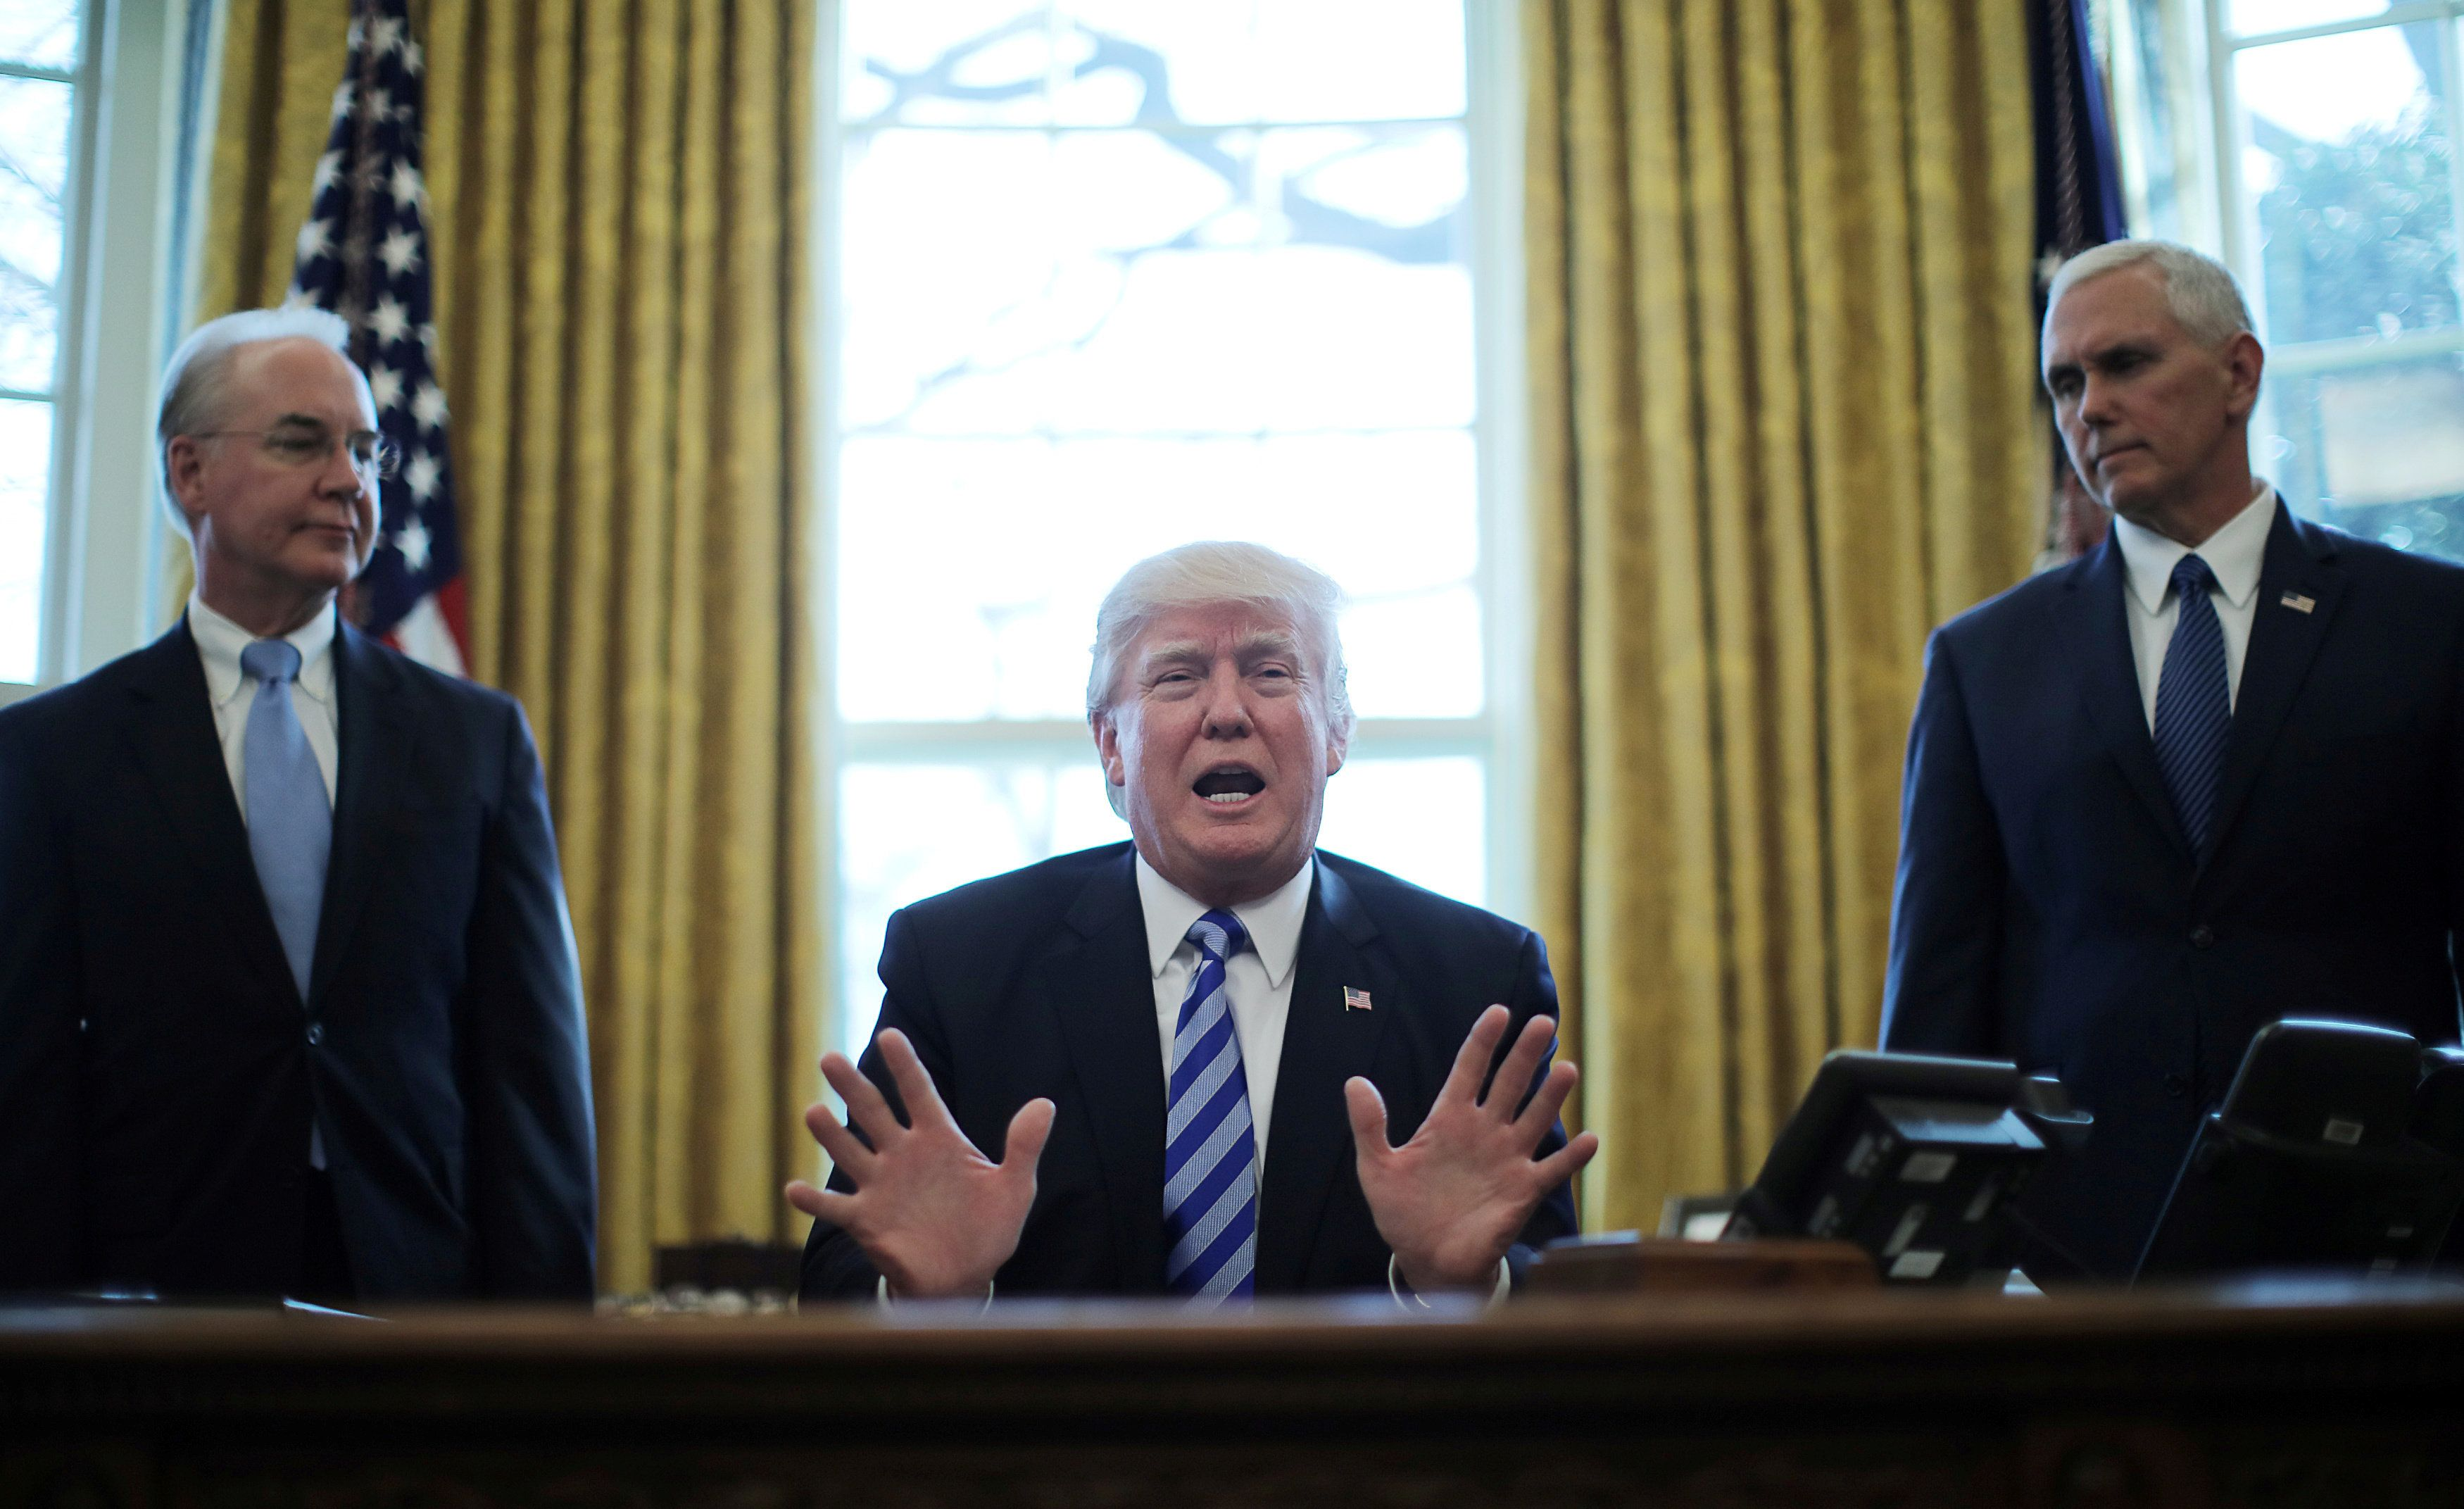 REFILE CORRECTING BYLINE - President Trump reacts to the AHCA health care bill being pulled by Congressional Republicans before a vote as he appears with Secretary of Health and Human Services Tom Price (L) and Vice President Mike Pence (R) in the Oval Office of the White House in Washington, U.S., March 24, 2017. REUTERS/Carlos Barria